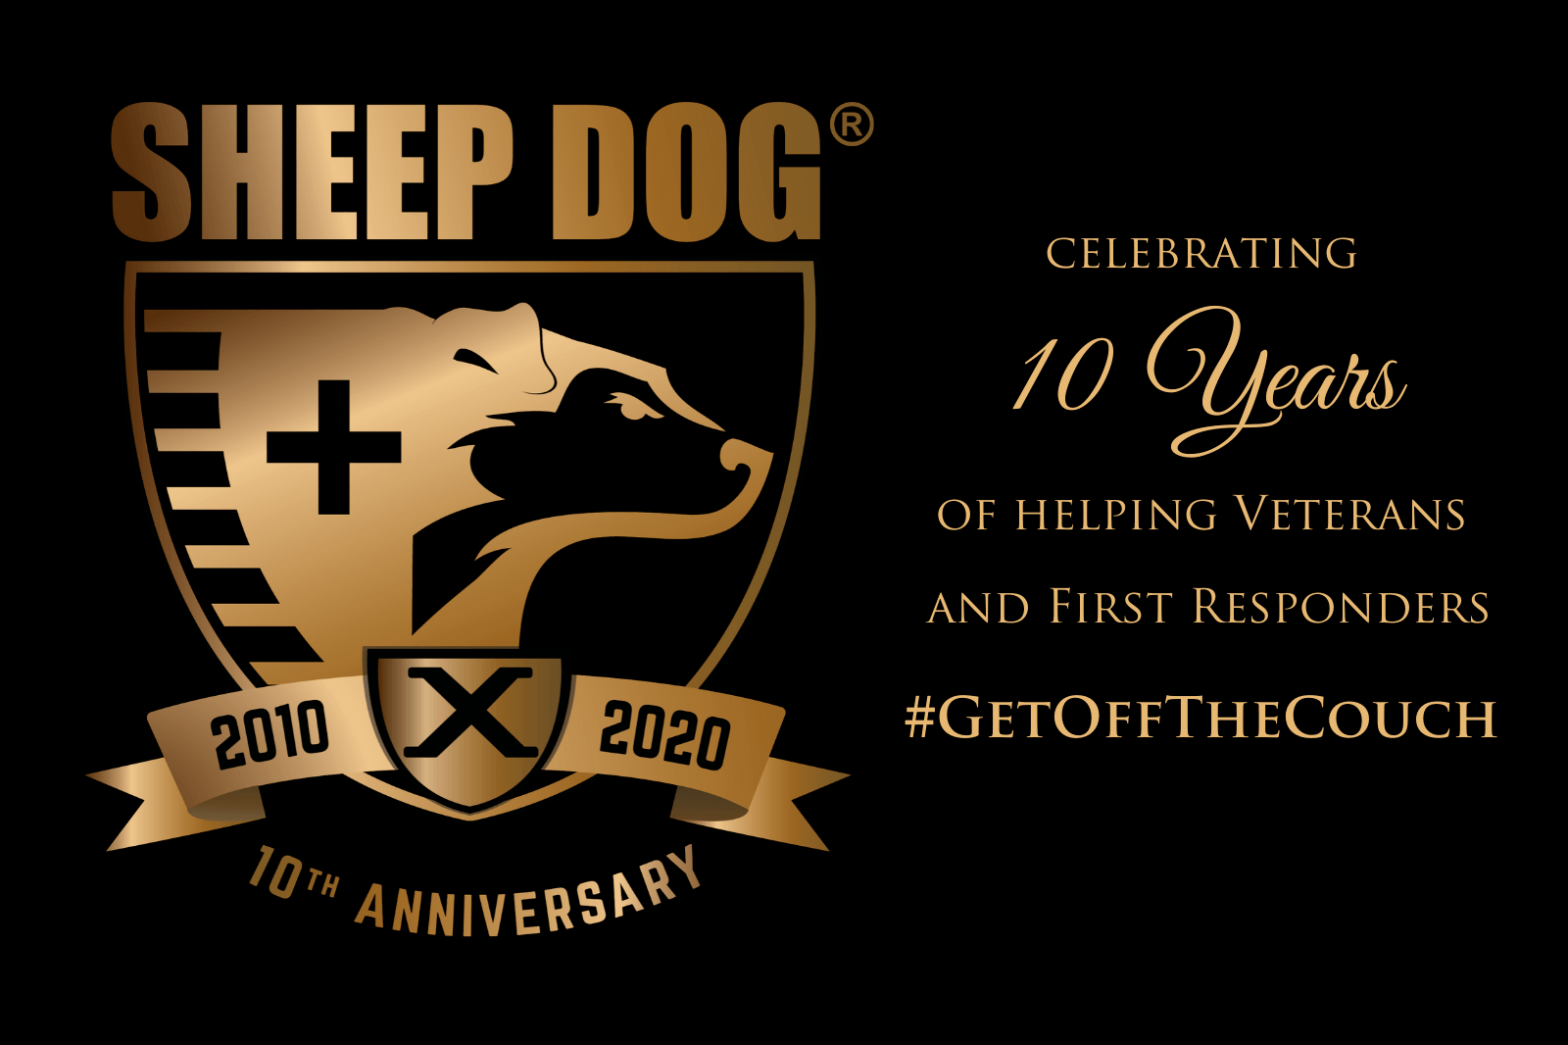 SDIA is Celebrating 10 Years of Helping Sheep Dogs #GetOffTheCouch in 2020